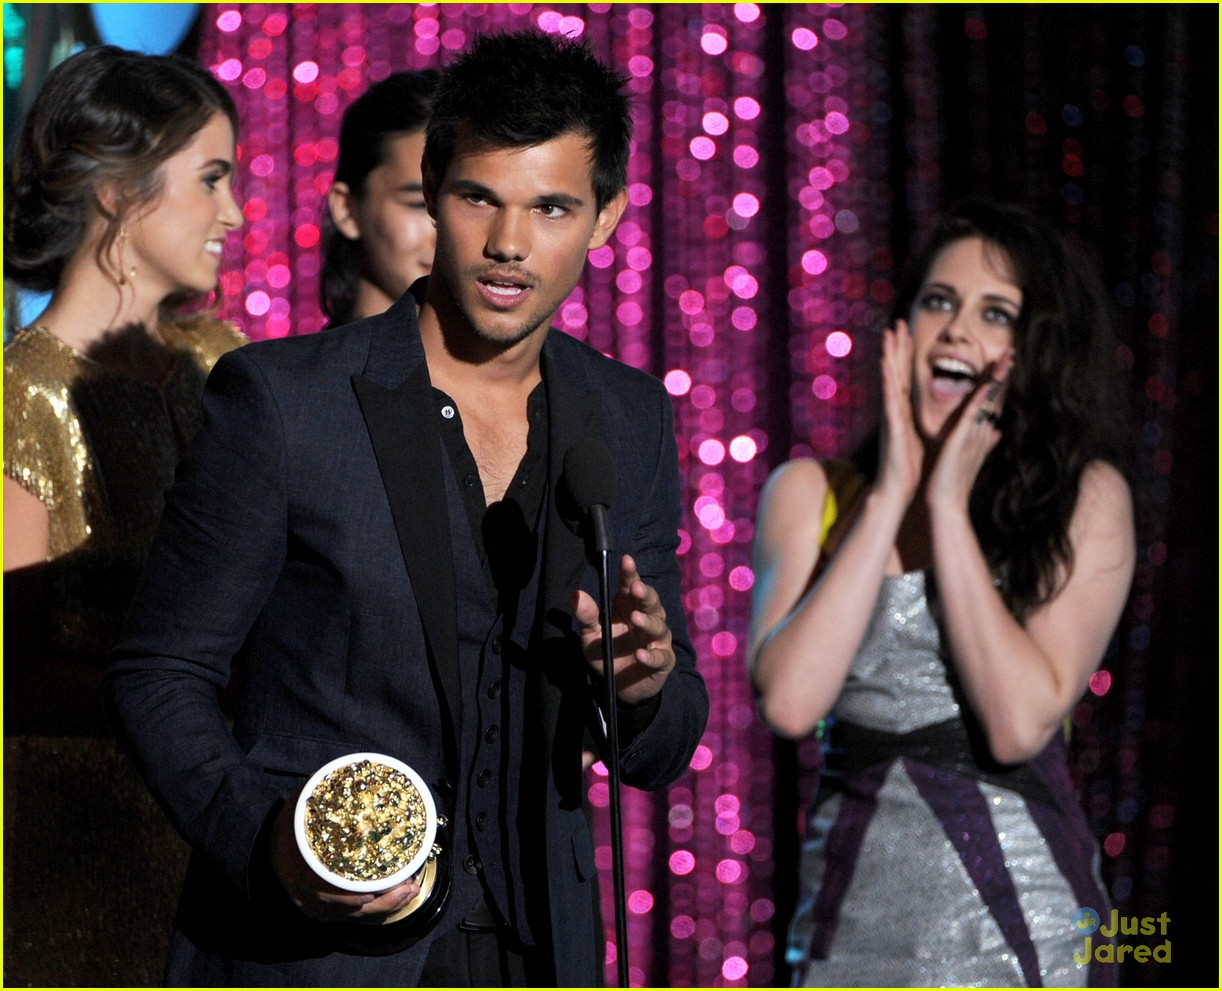 booboo stewart taylor lautner mtv movie awards 10